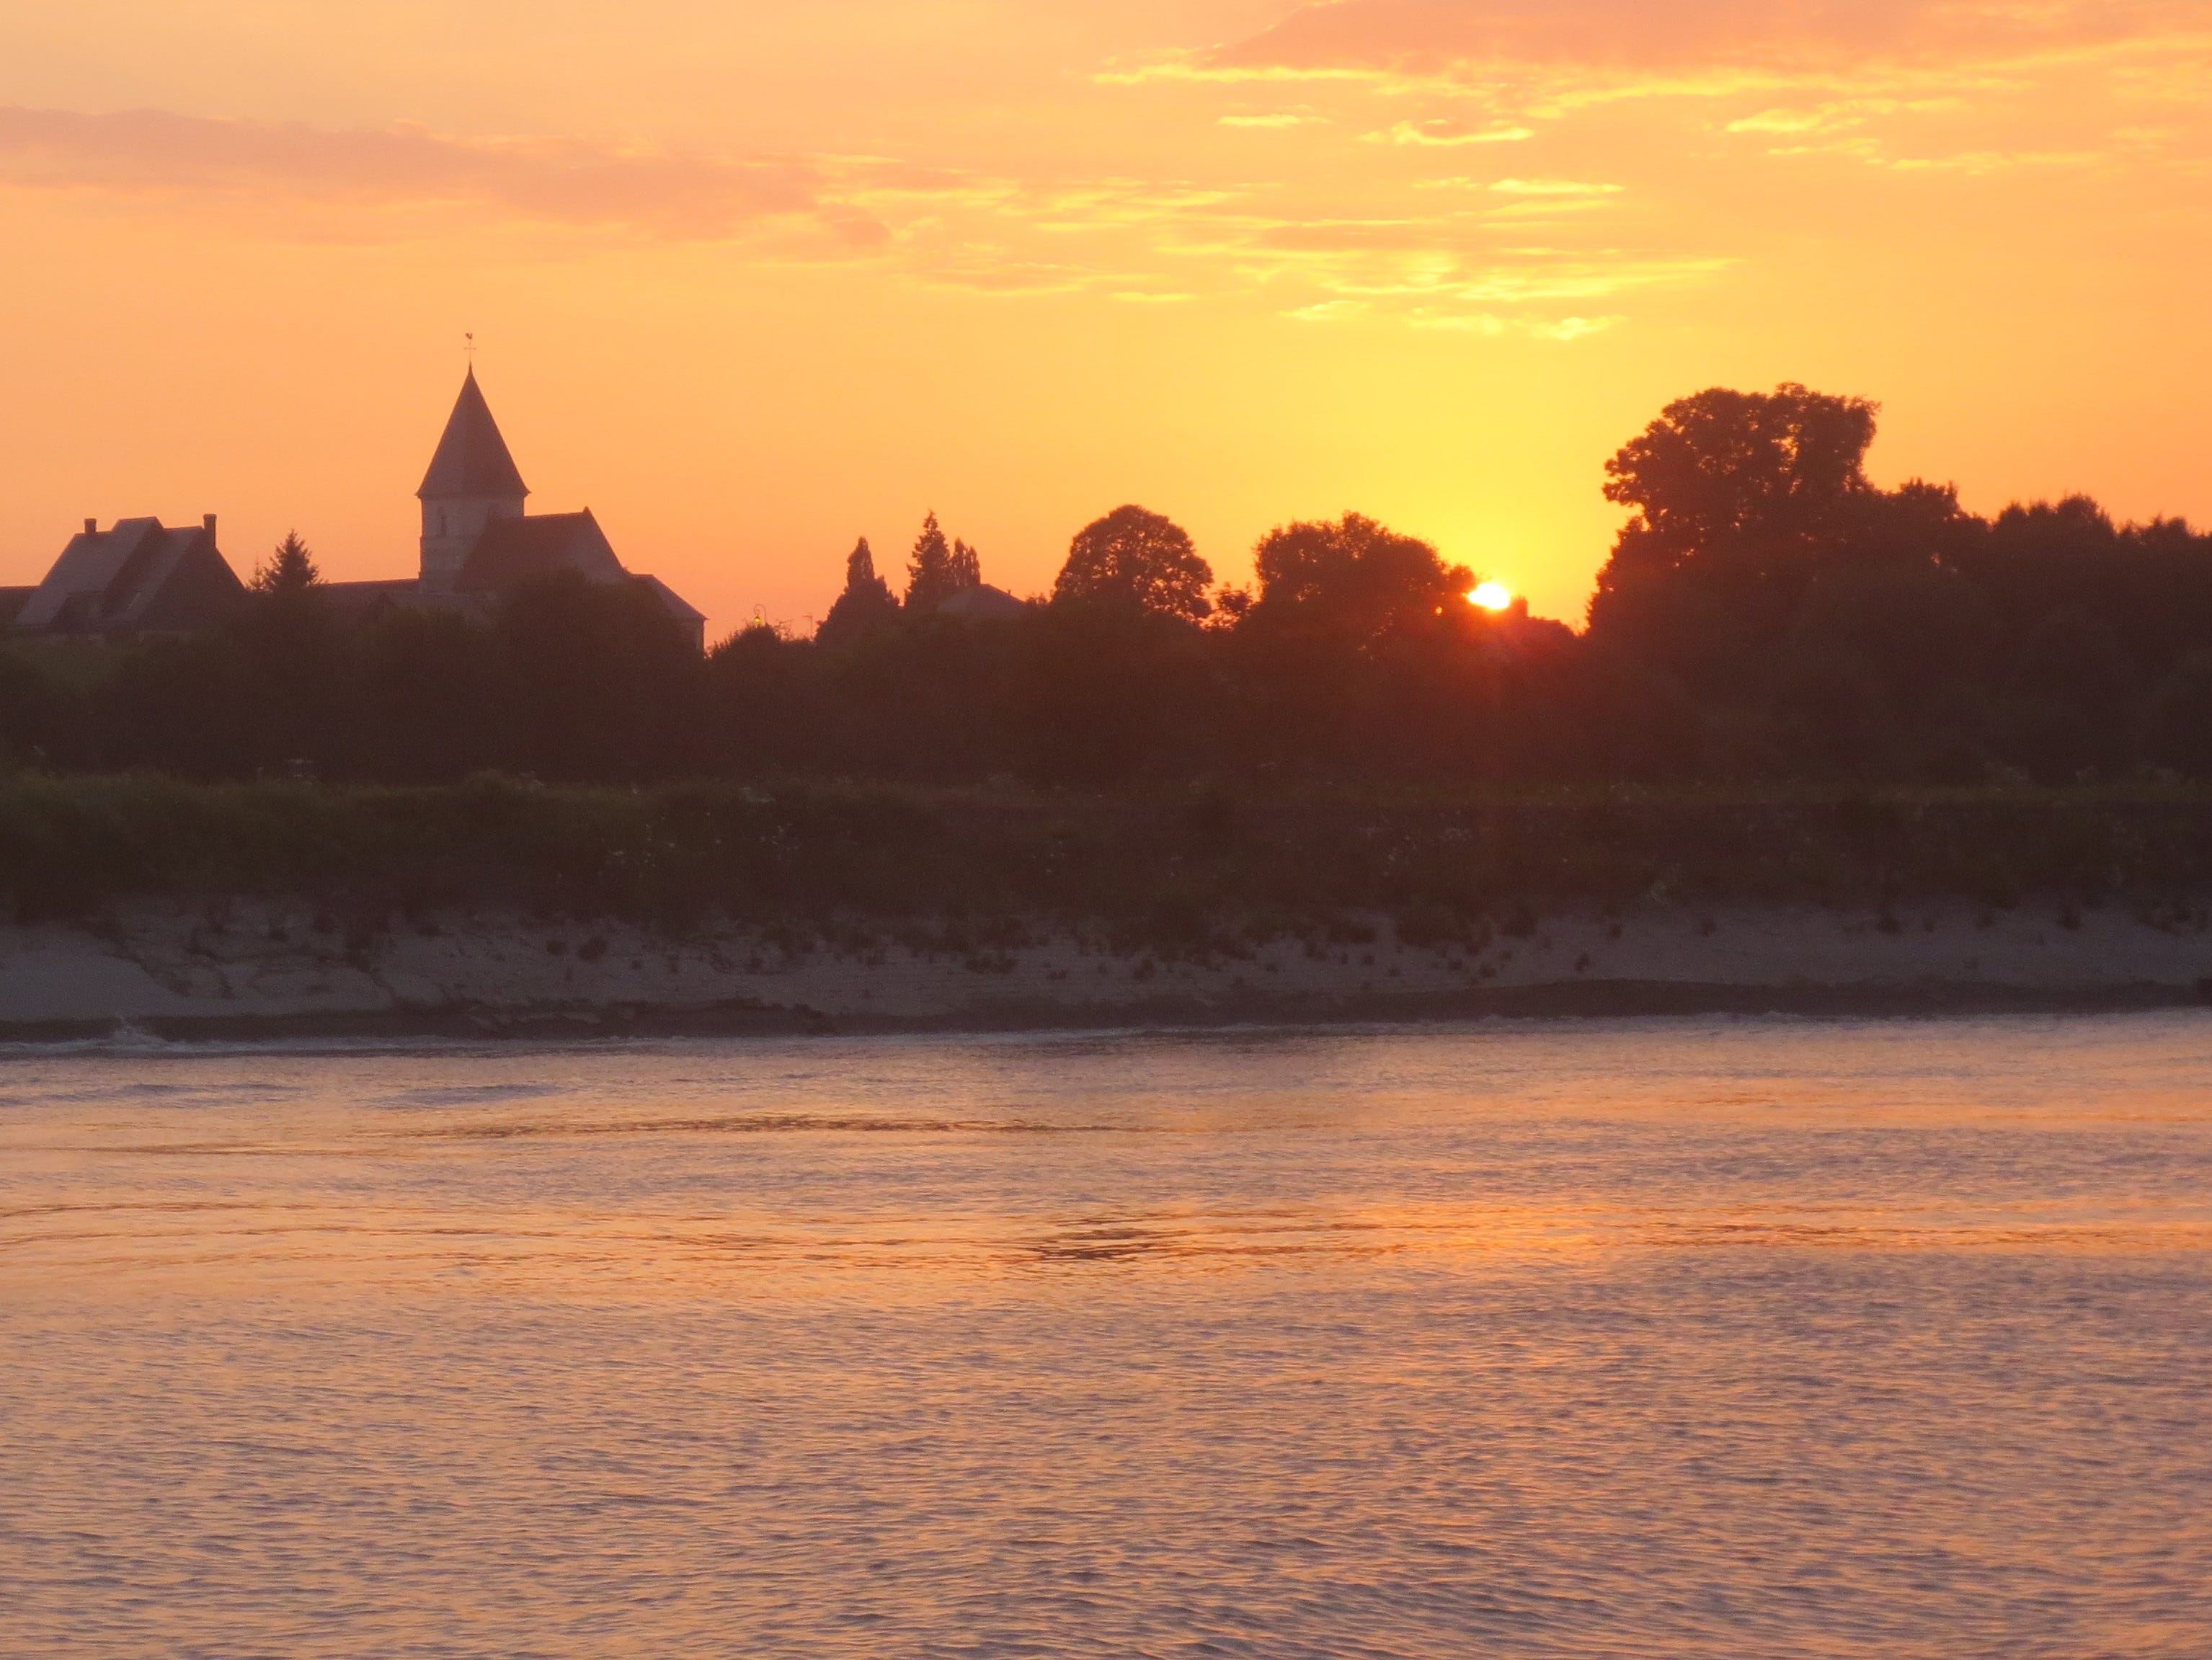 Sunset on the Seine River in Normandy. France.